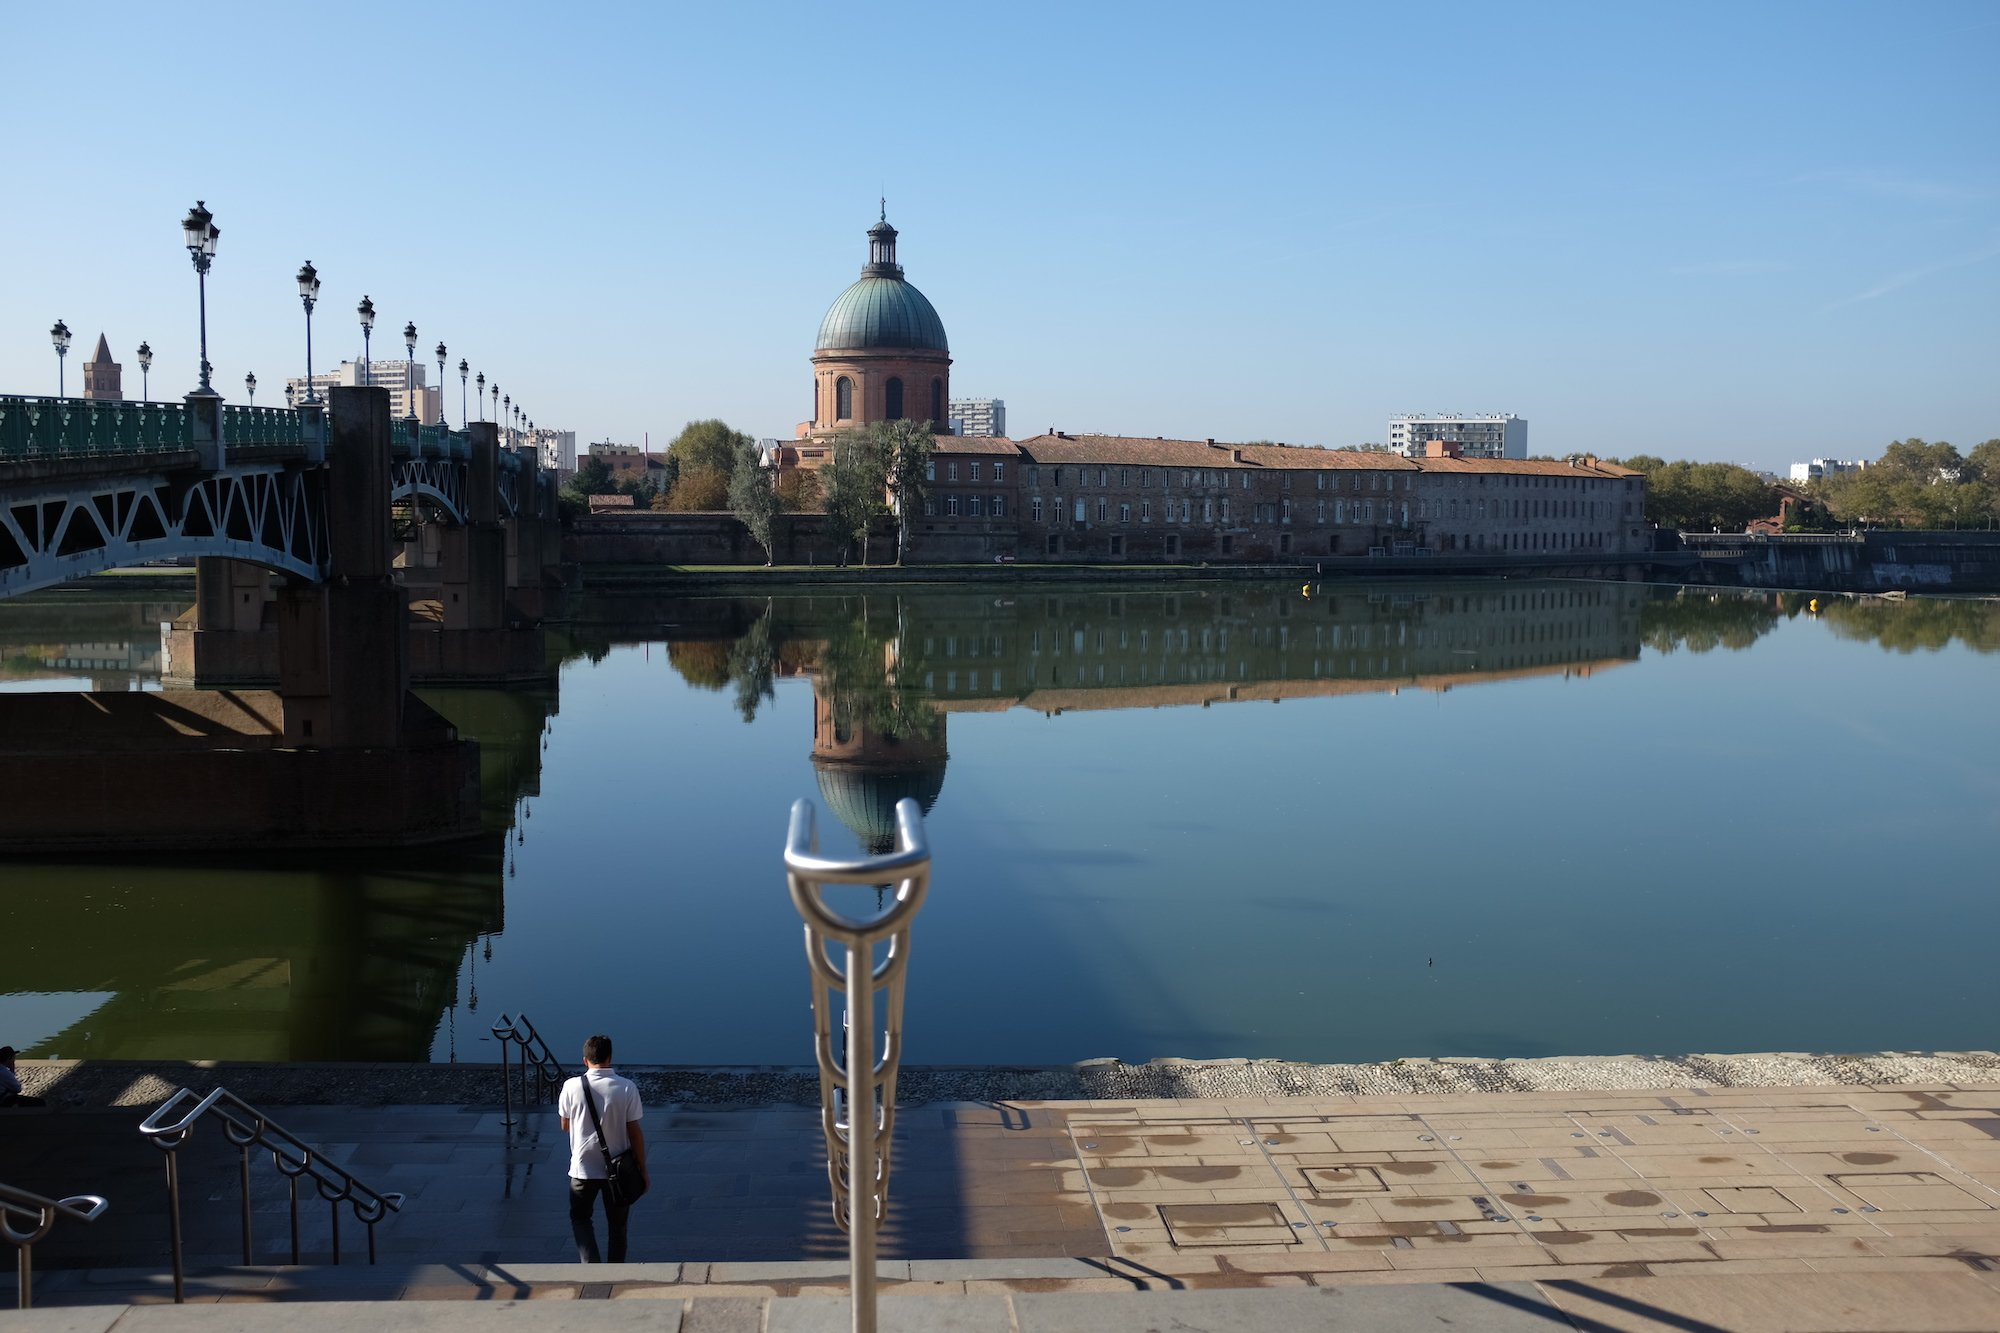 Toulouse waterways